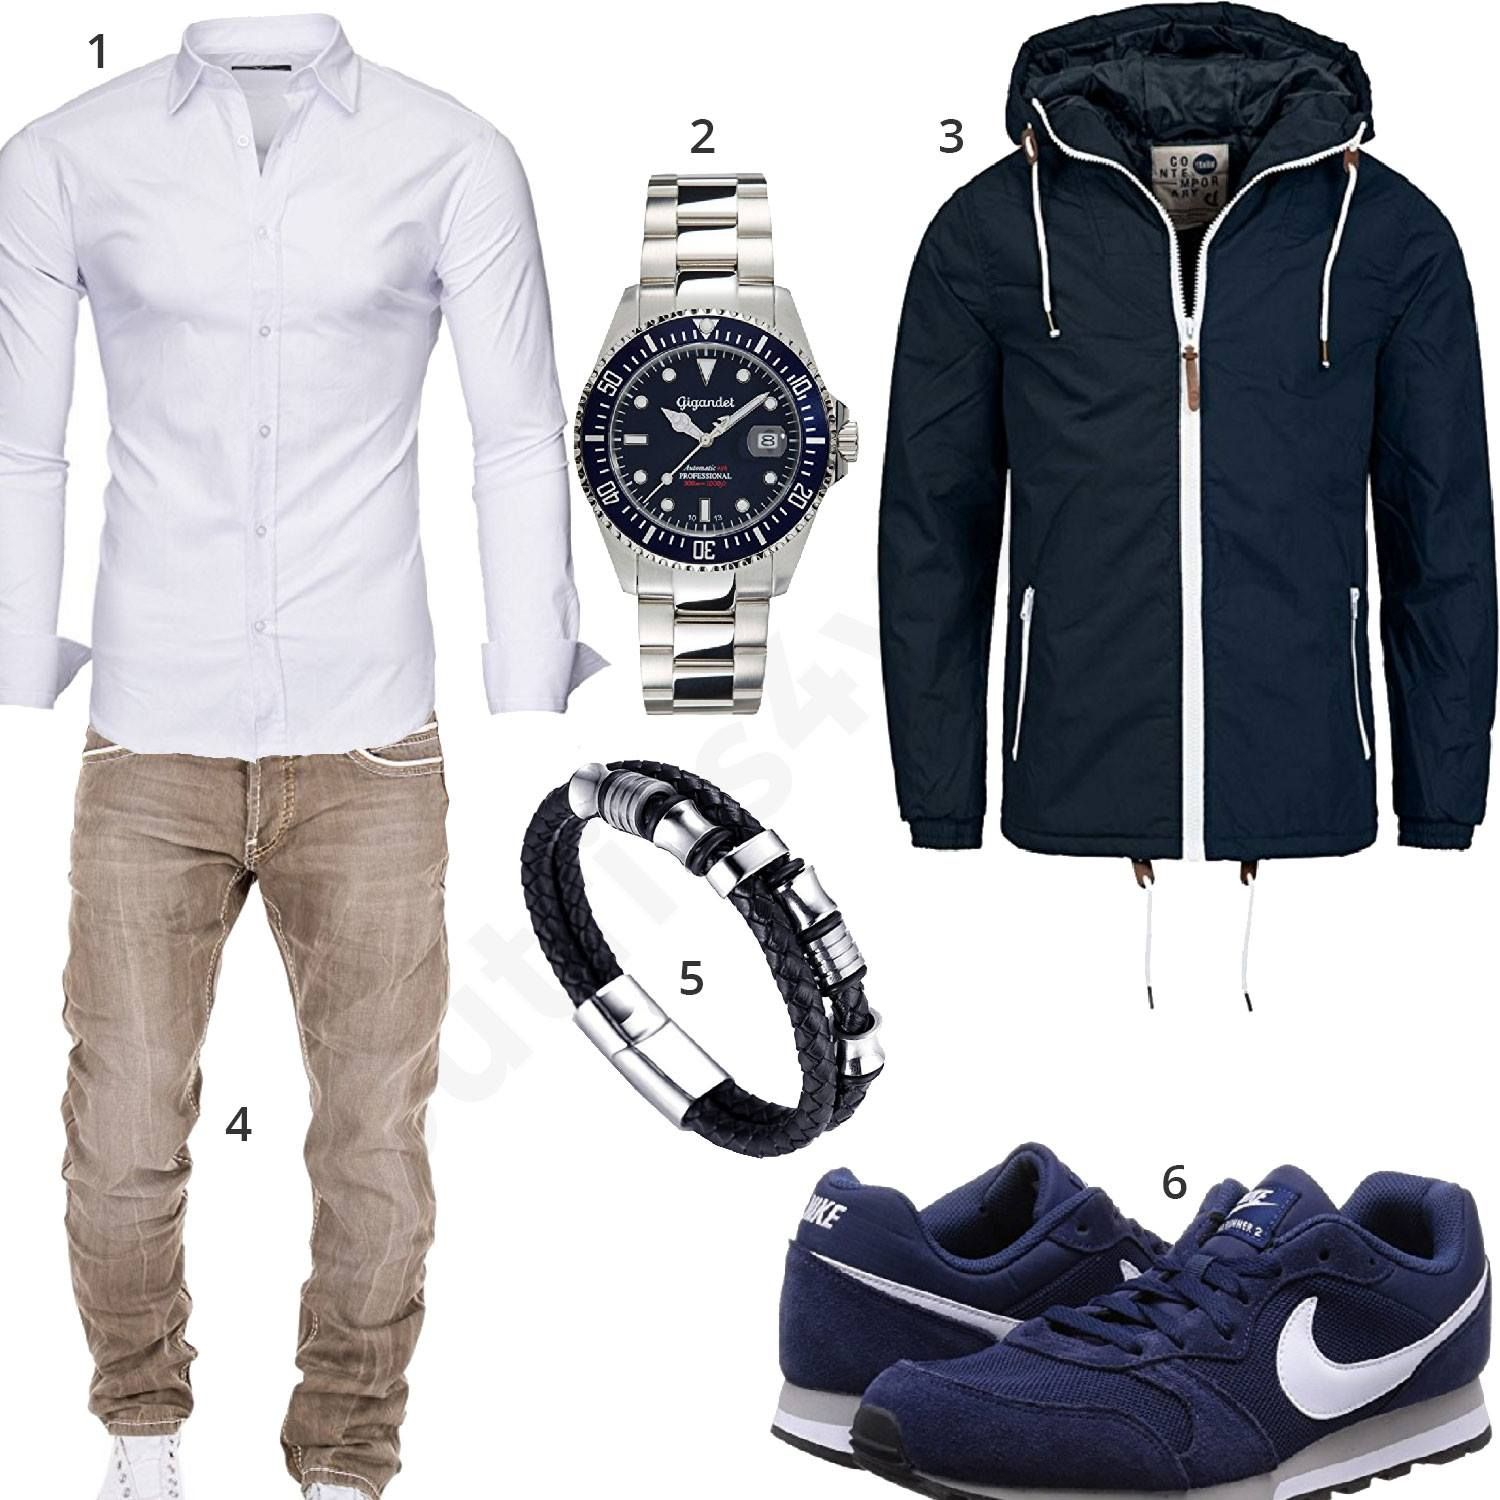 herren outfit mit wei em kayhan hemd gigandet uhr blauer solid jacke beiger merish jeans. Black Bedroom Furniture Sets. Home Design Ideas